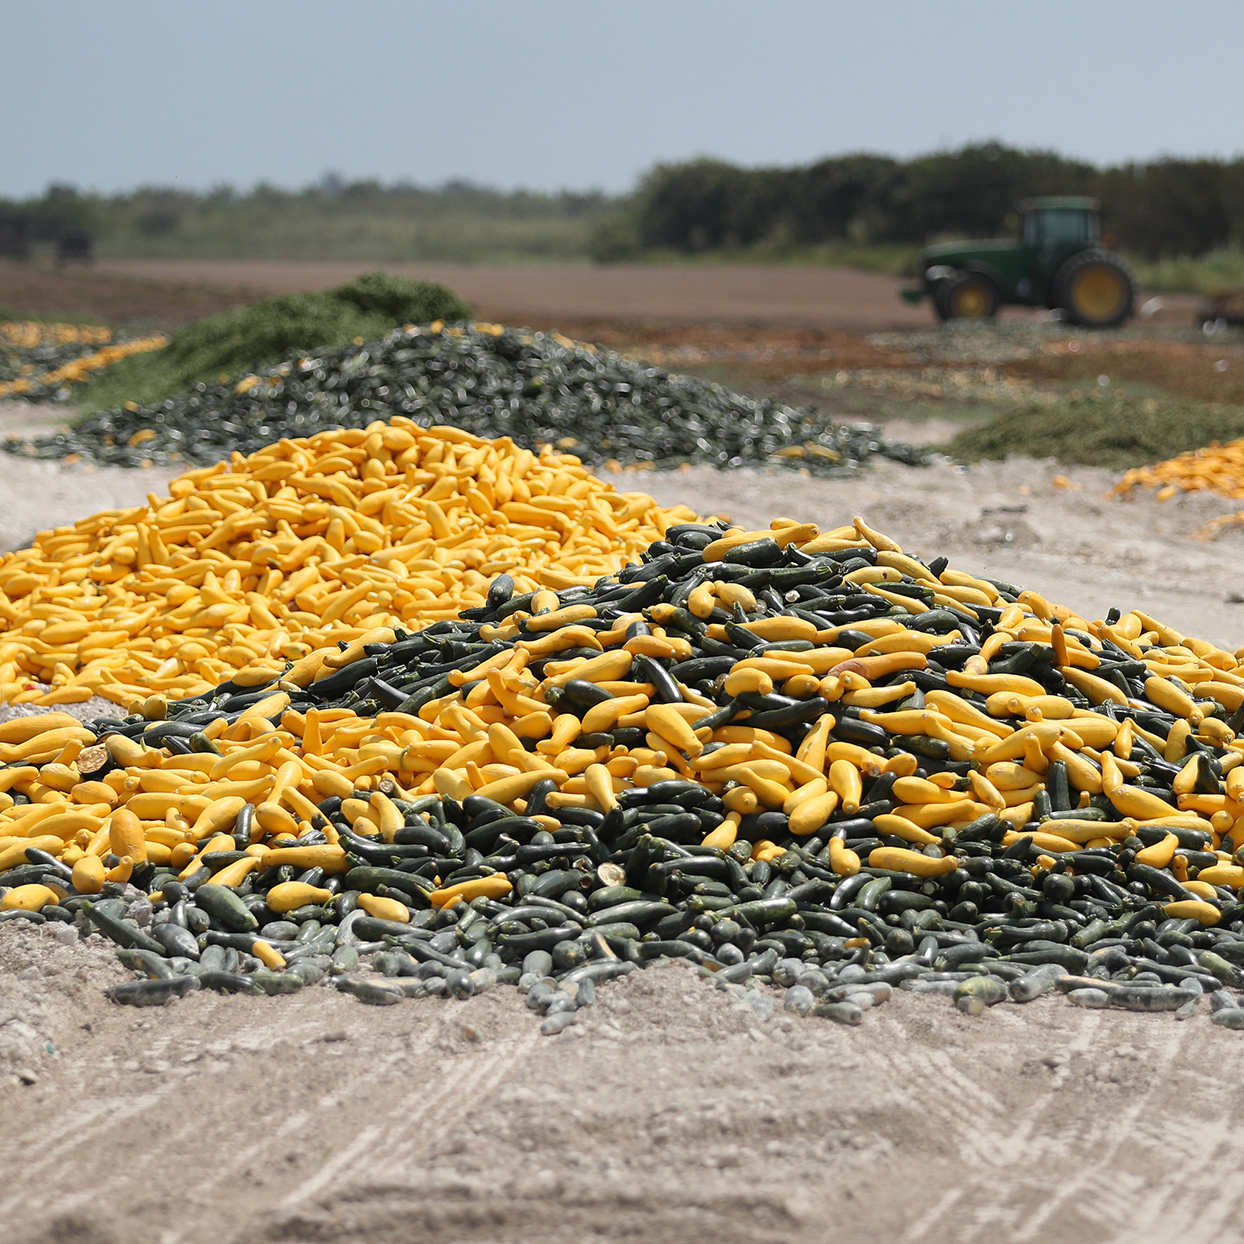 Photo of piles of squash on a farm